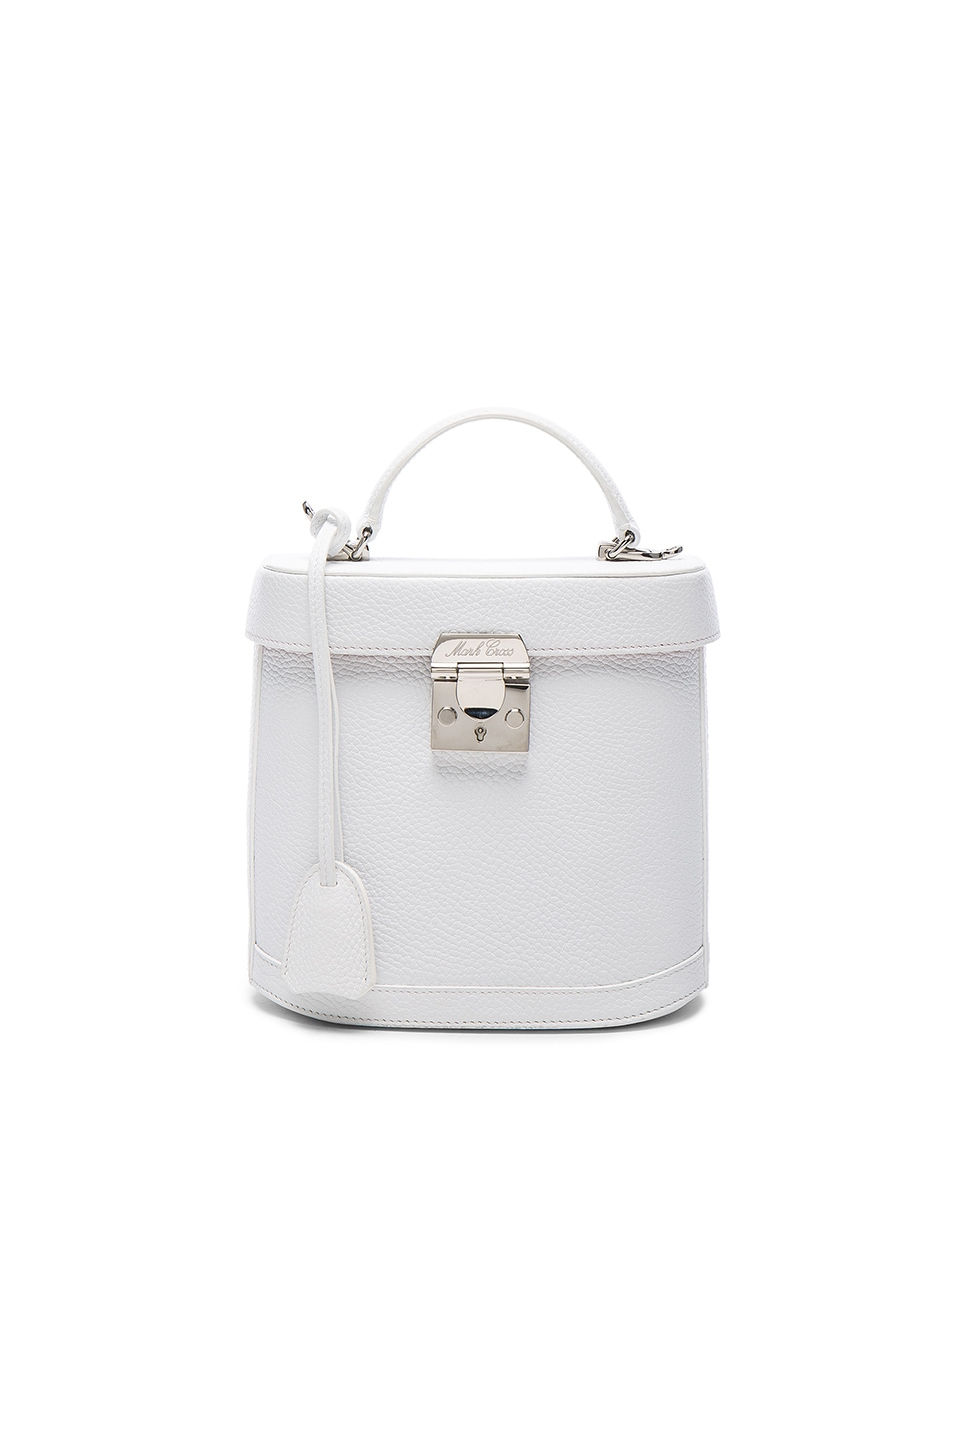 Image 1 of Mark Cross Benchly Bag in White Pebble